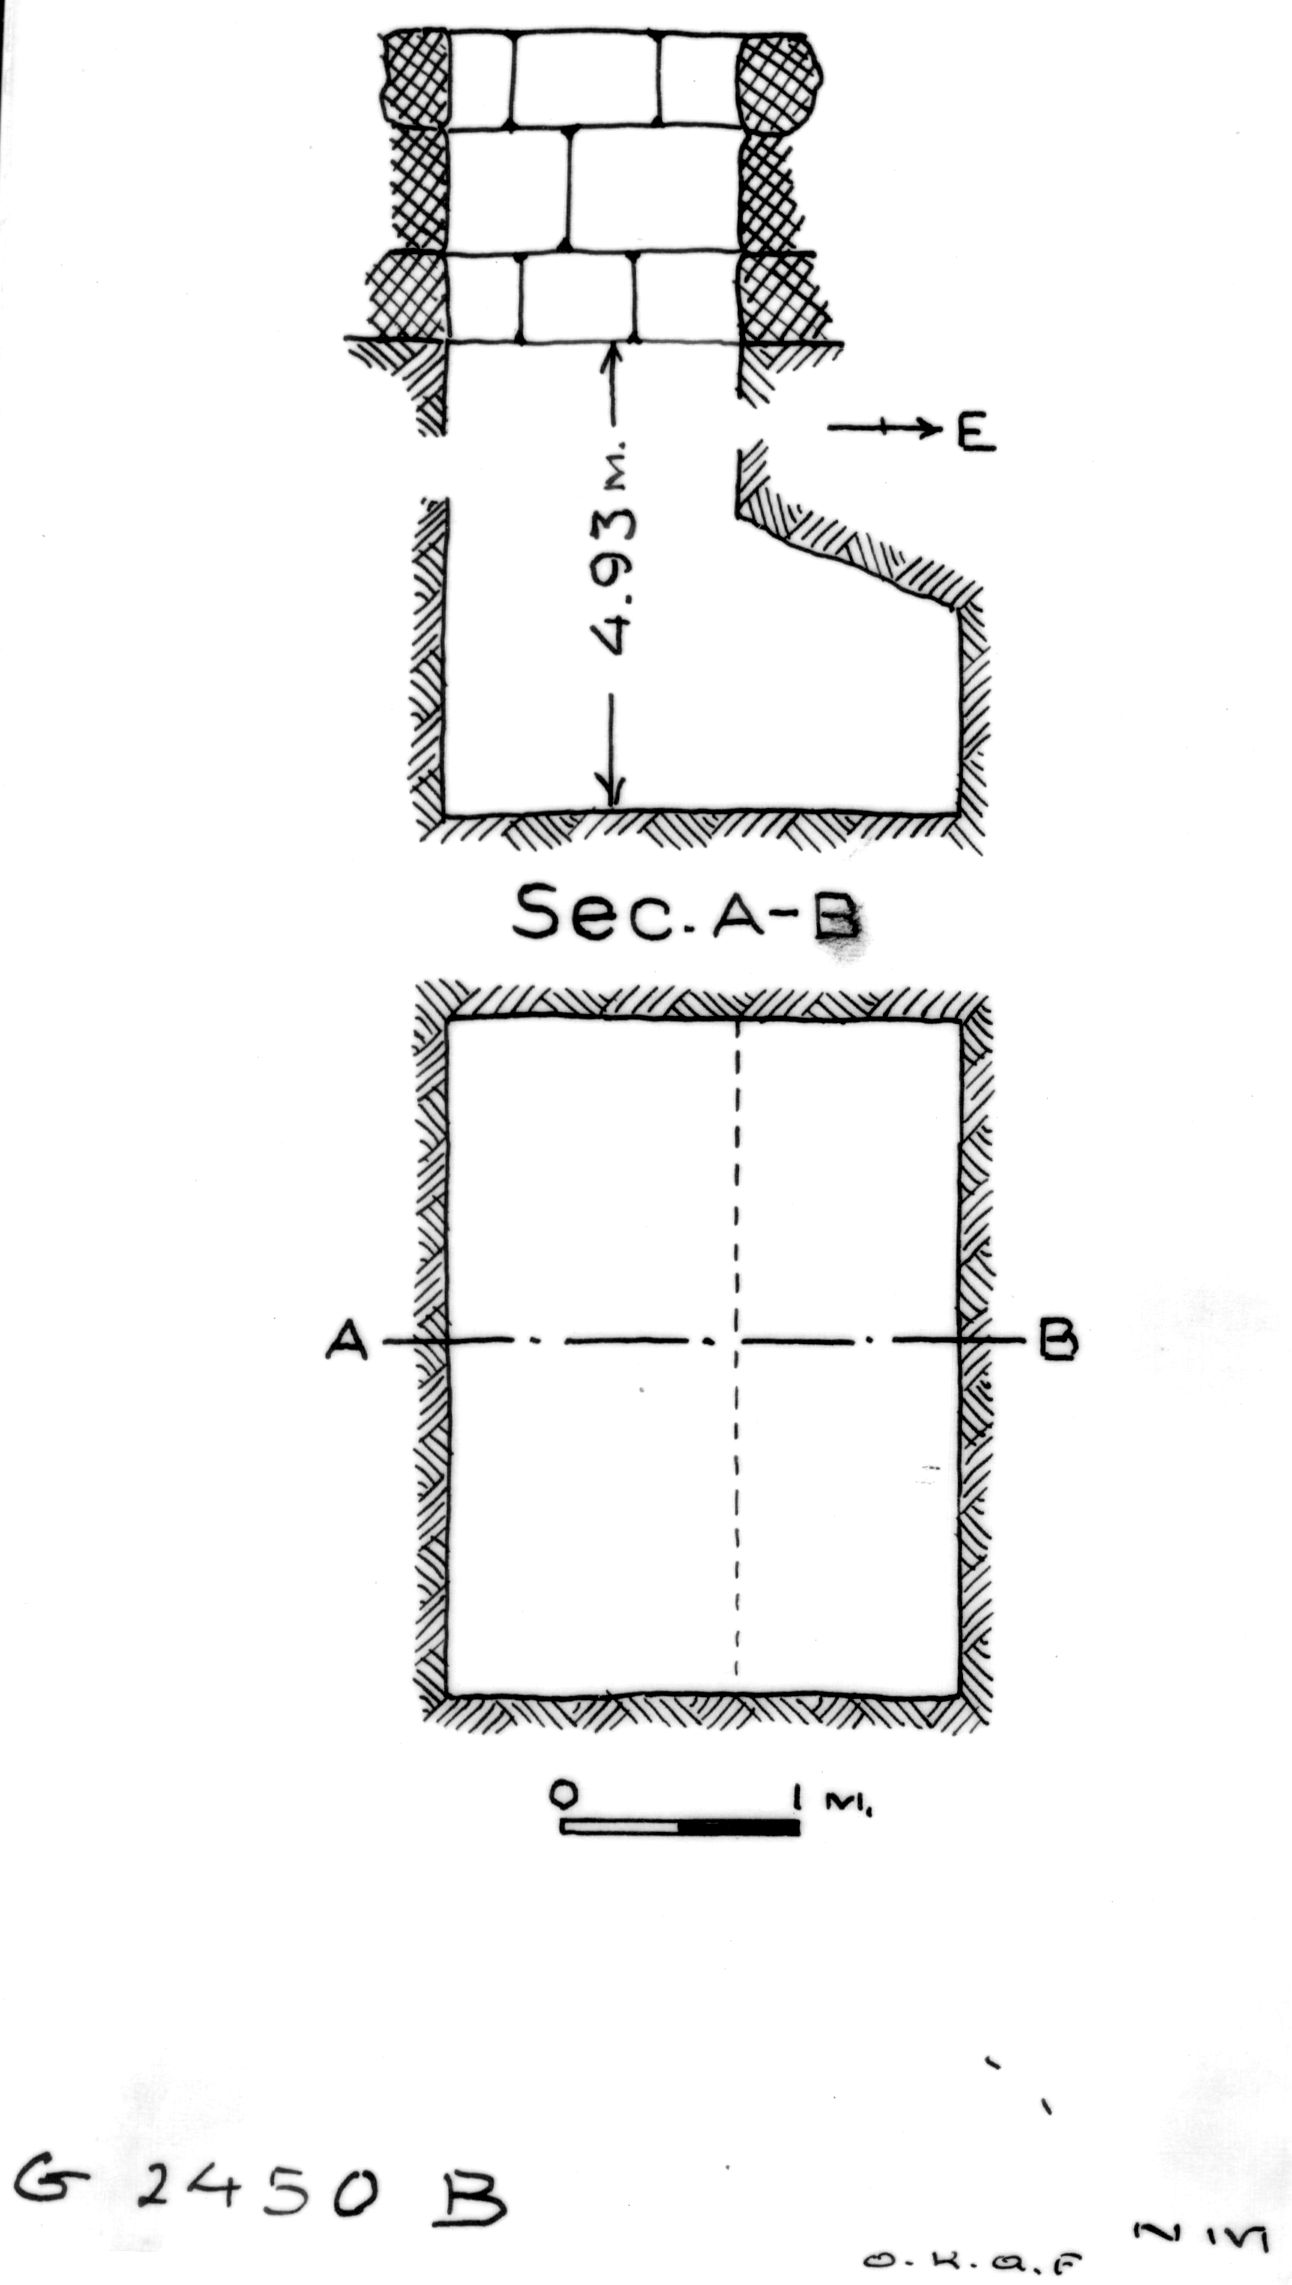 Maps and plans: G 2450, Shaft B